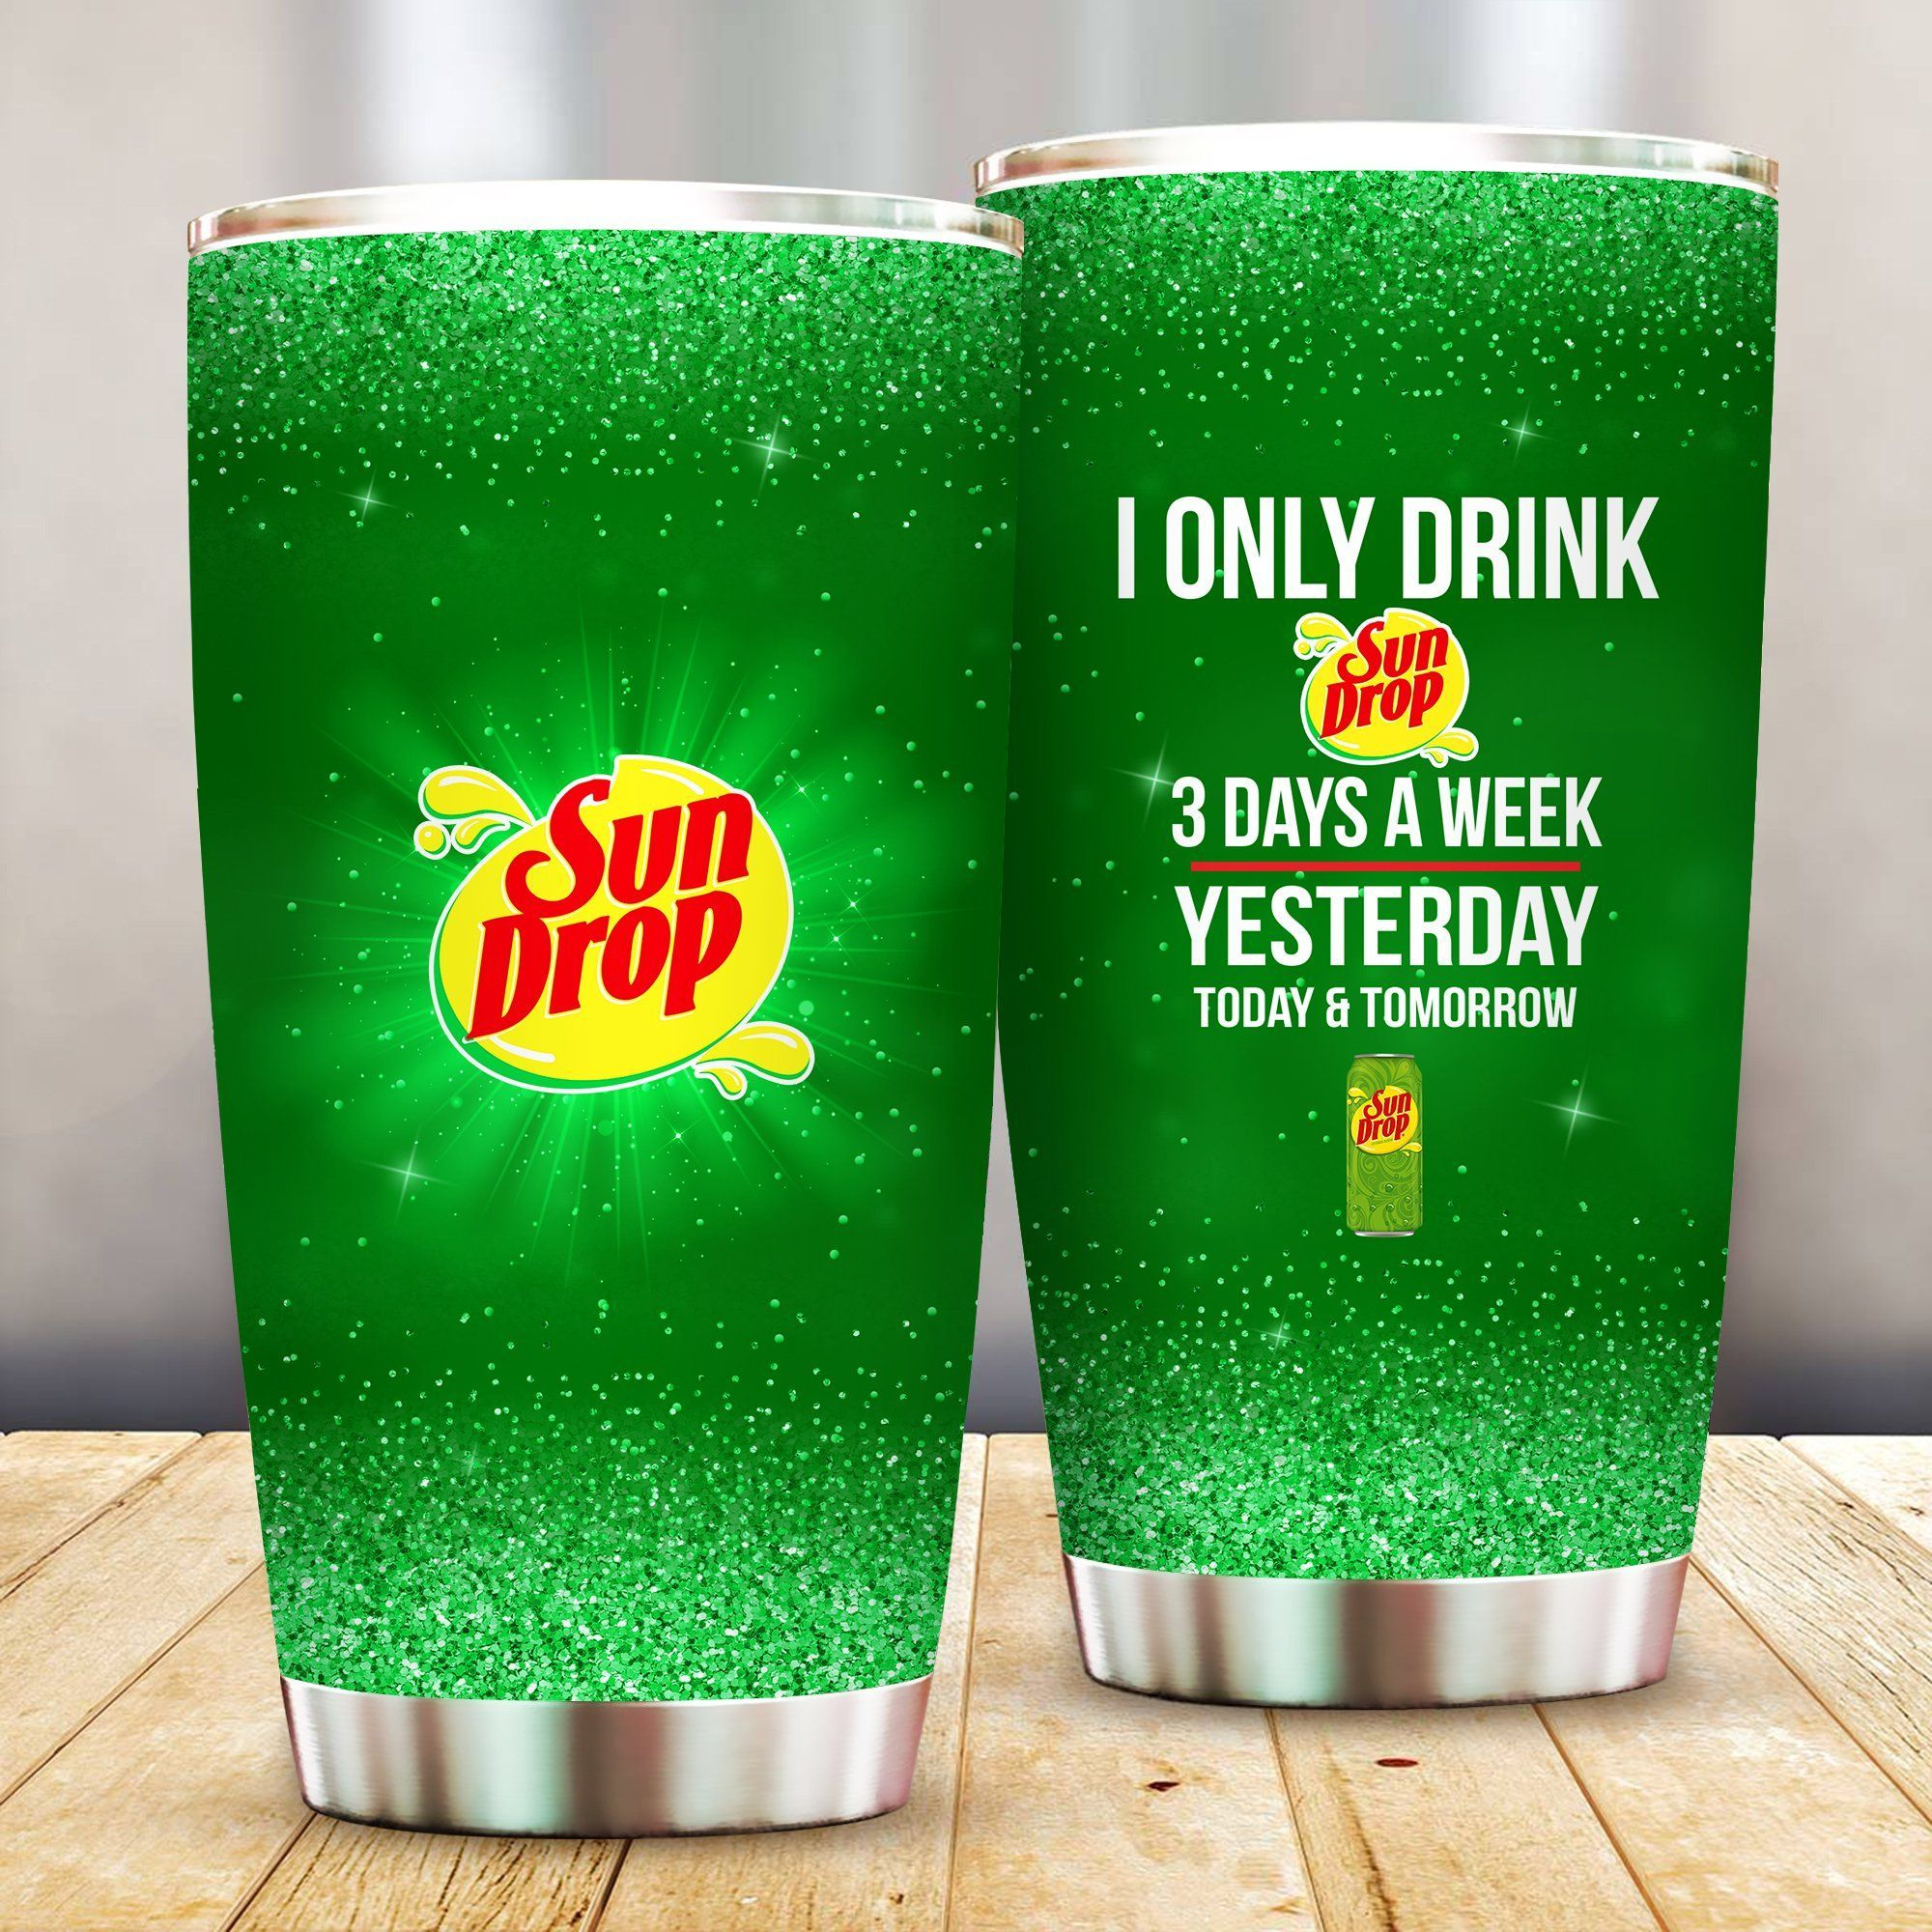 I Only Drink Sun Drop 3 Days A Week Yesterday Today and Tomorrow - Funny Customized Tumbler Cup Unisex Tshirt